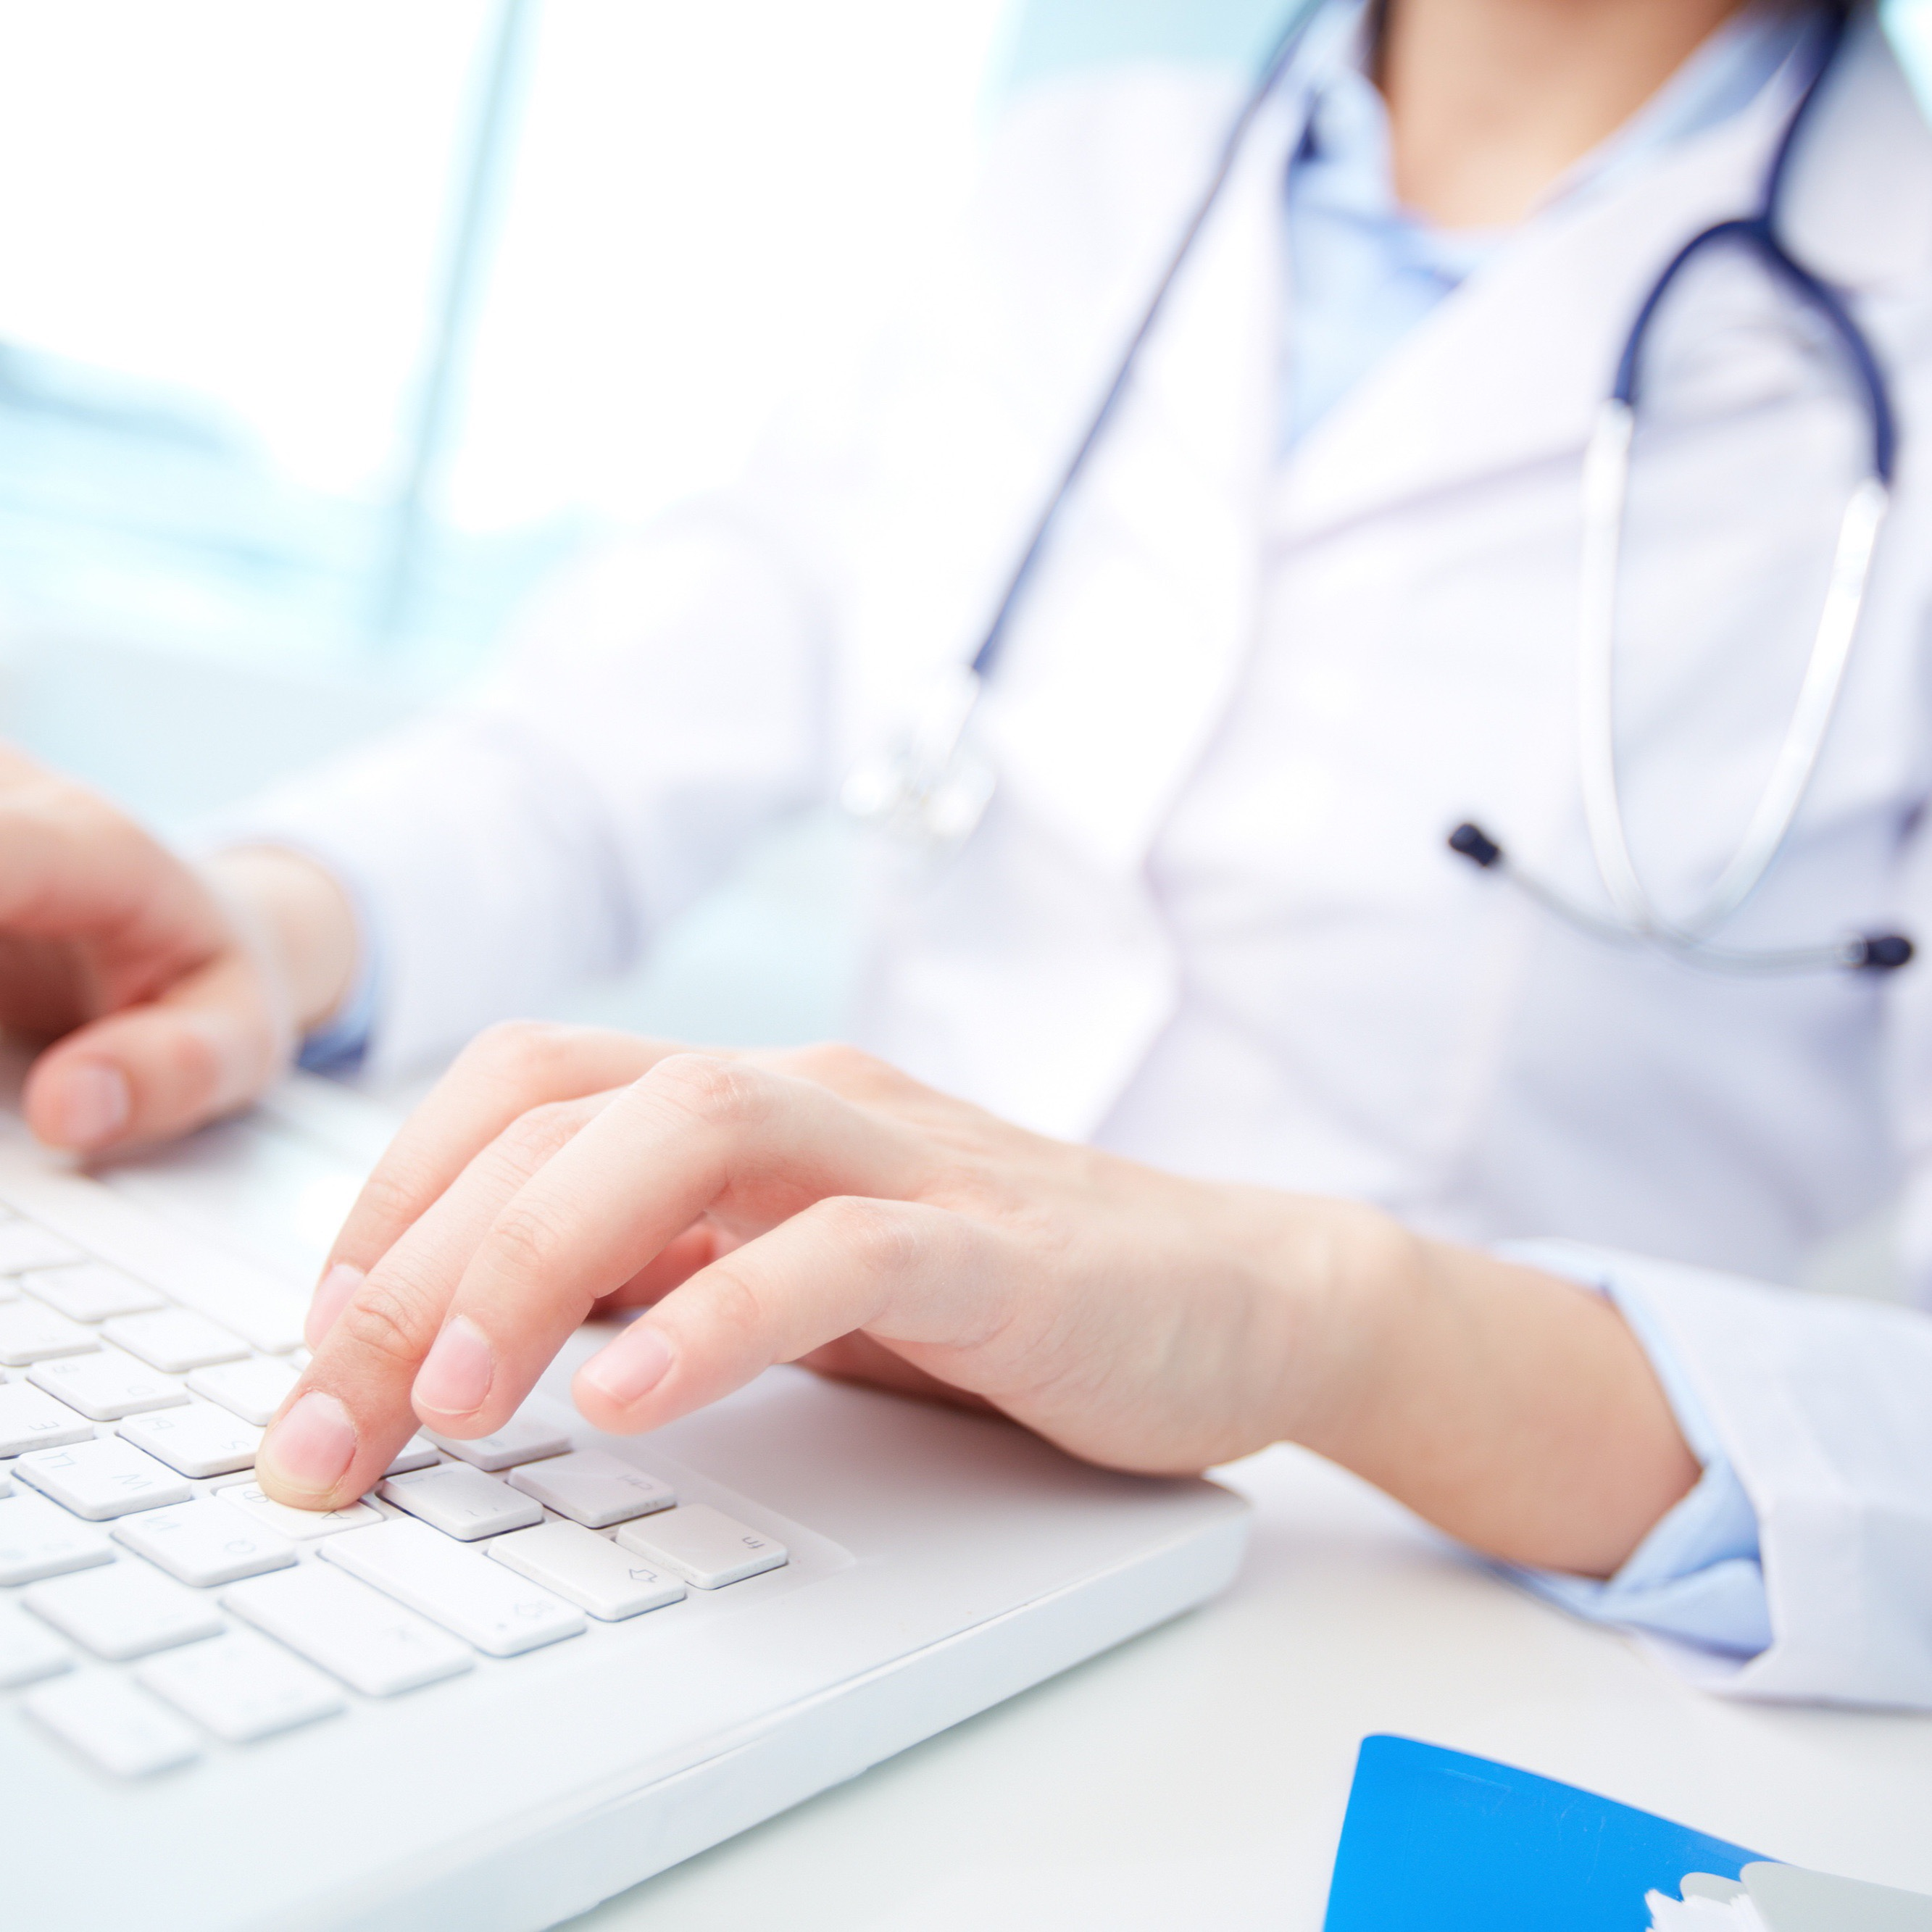 How To Put Together A Nurse Practitioner Resume And Cover Letter